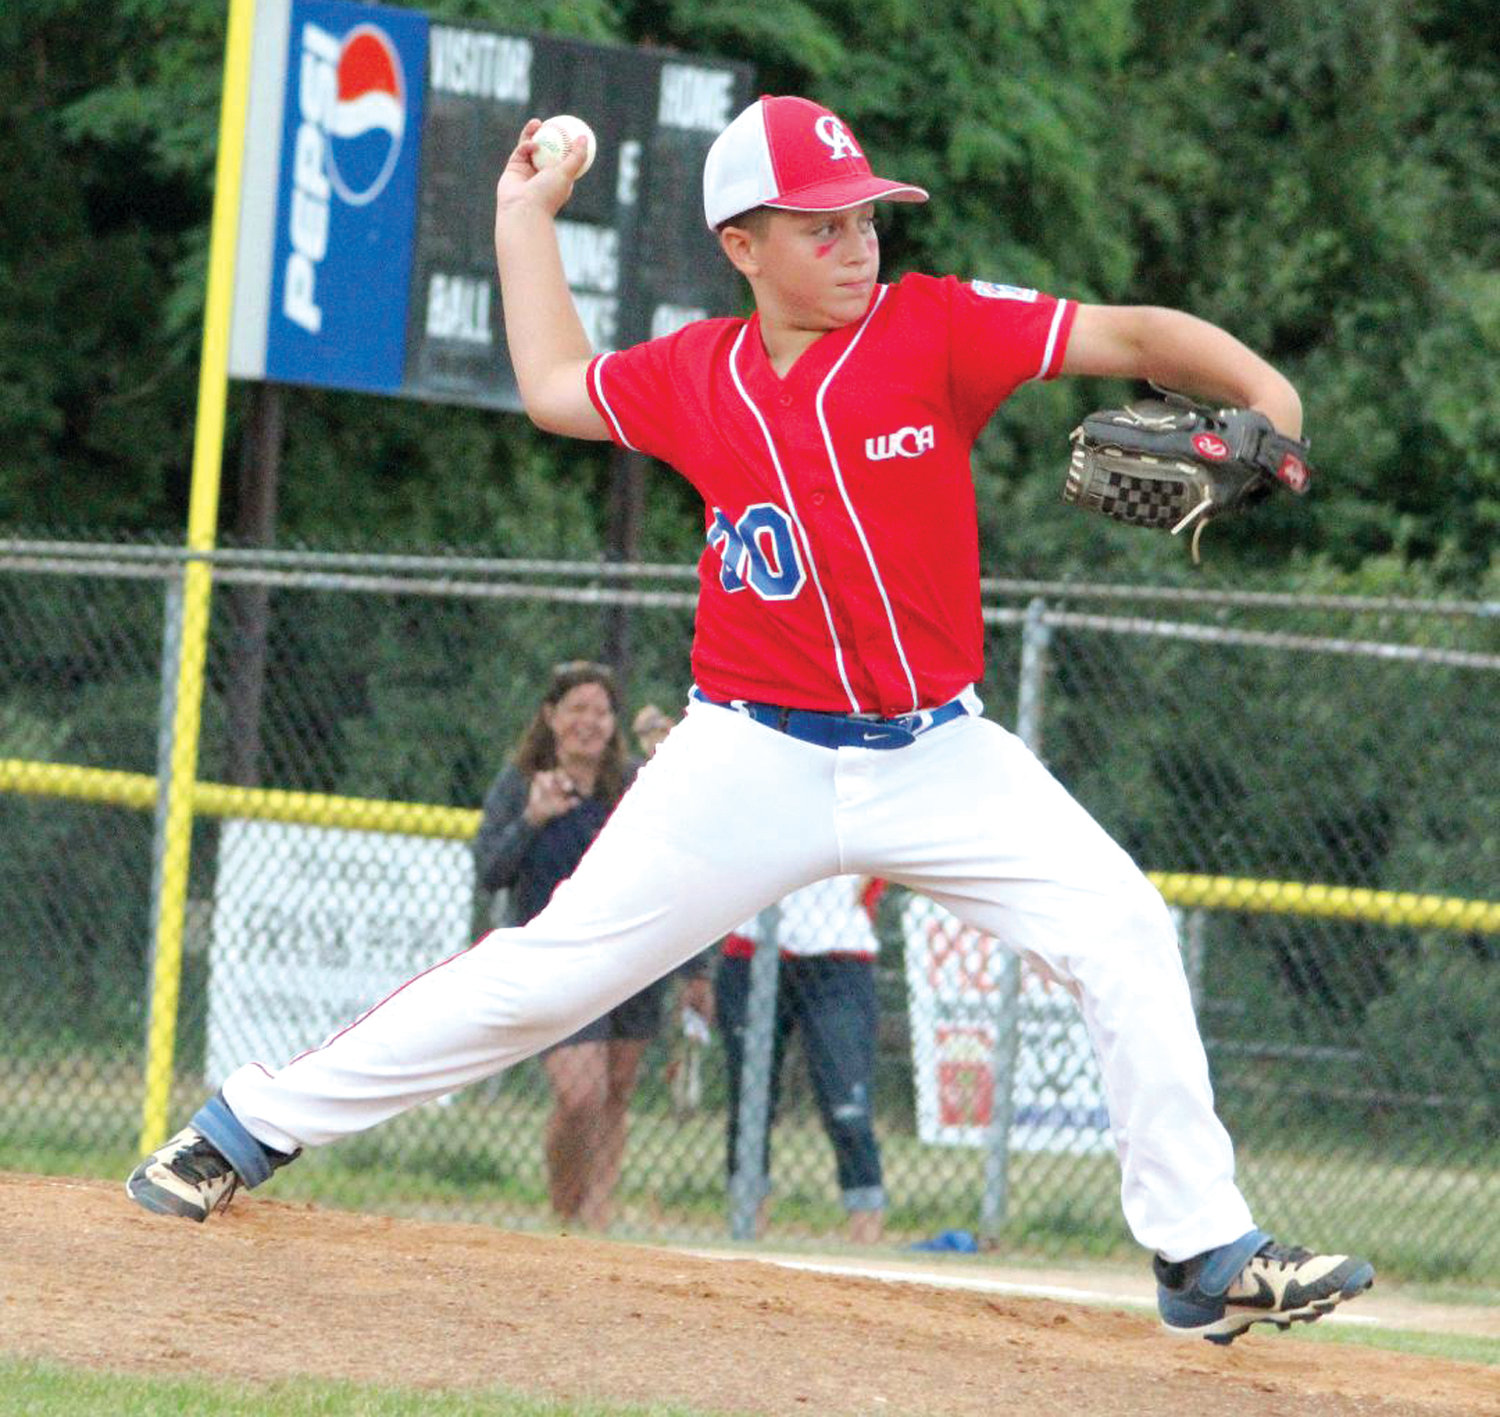 ON THE HILL: WCA pitcher Anthony Burt deals against NK last week.